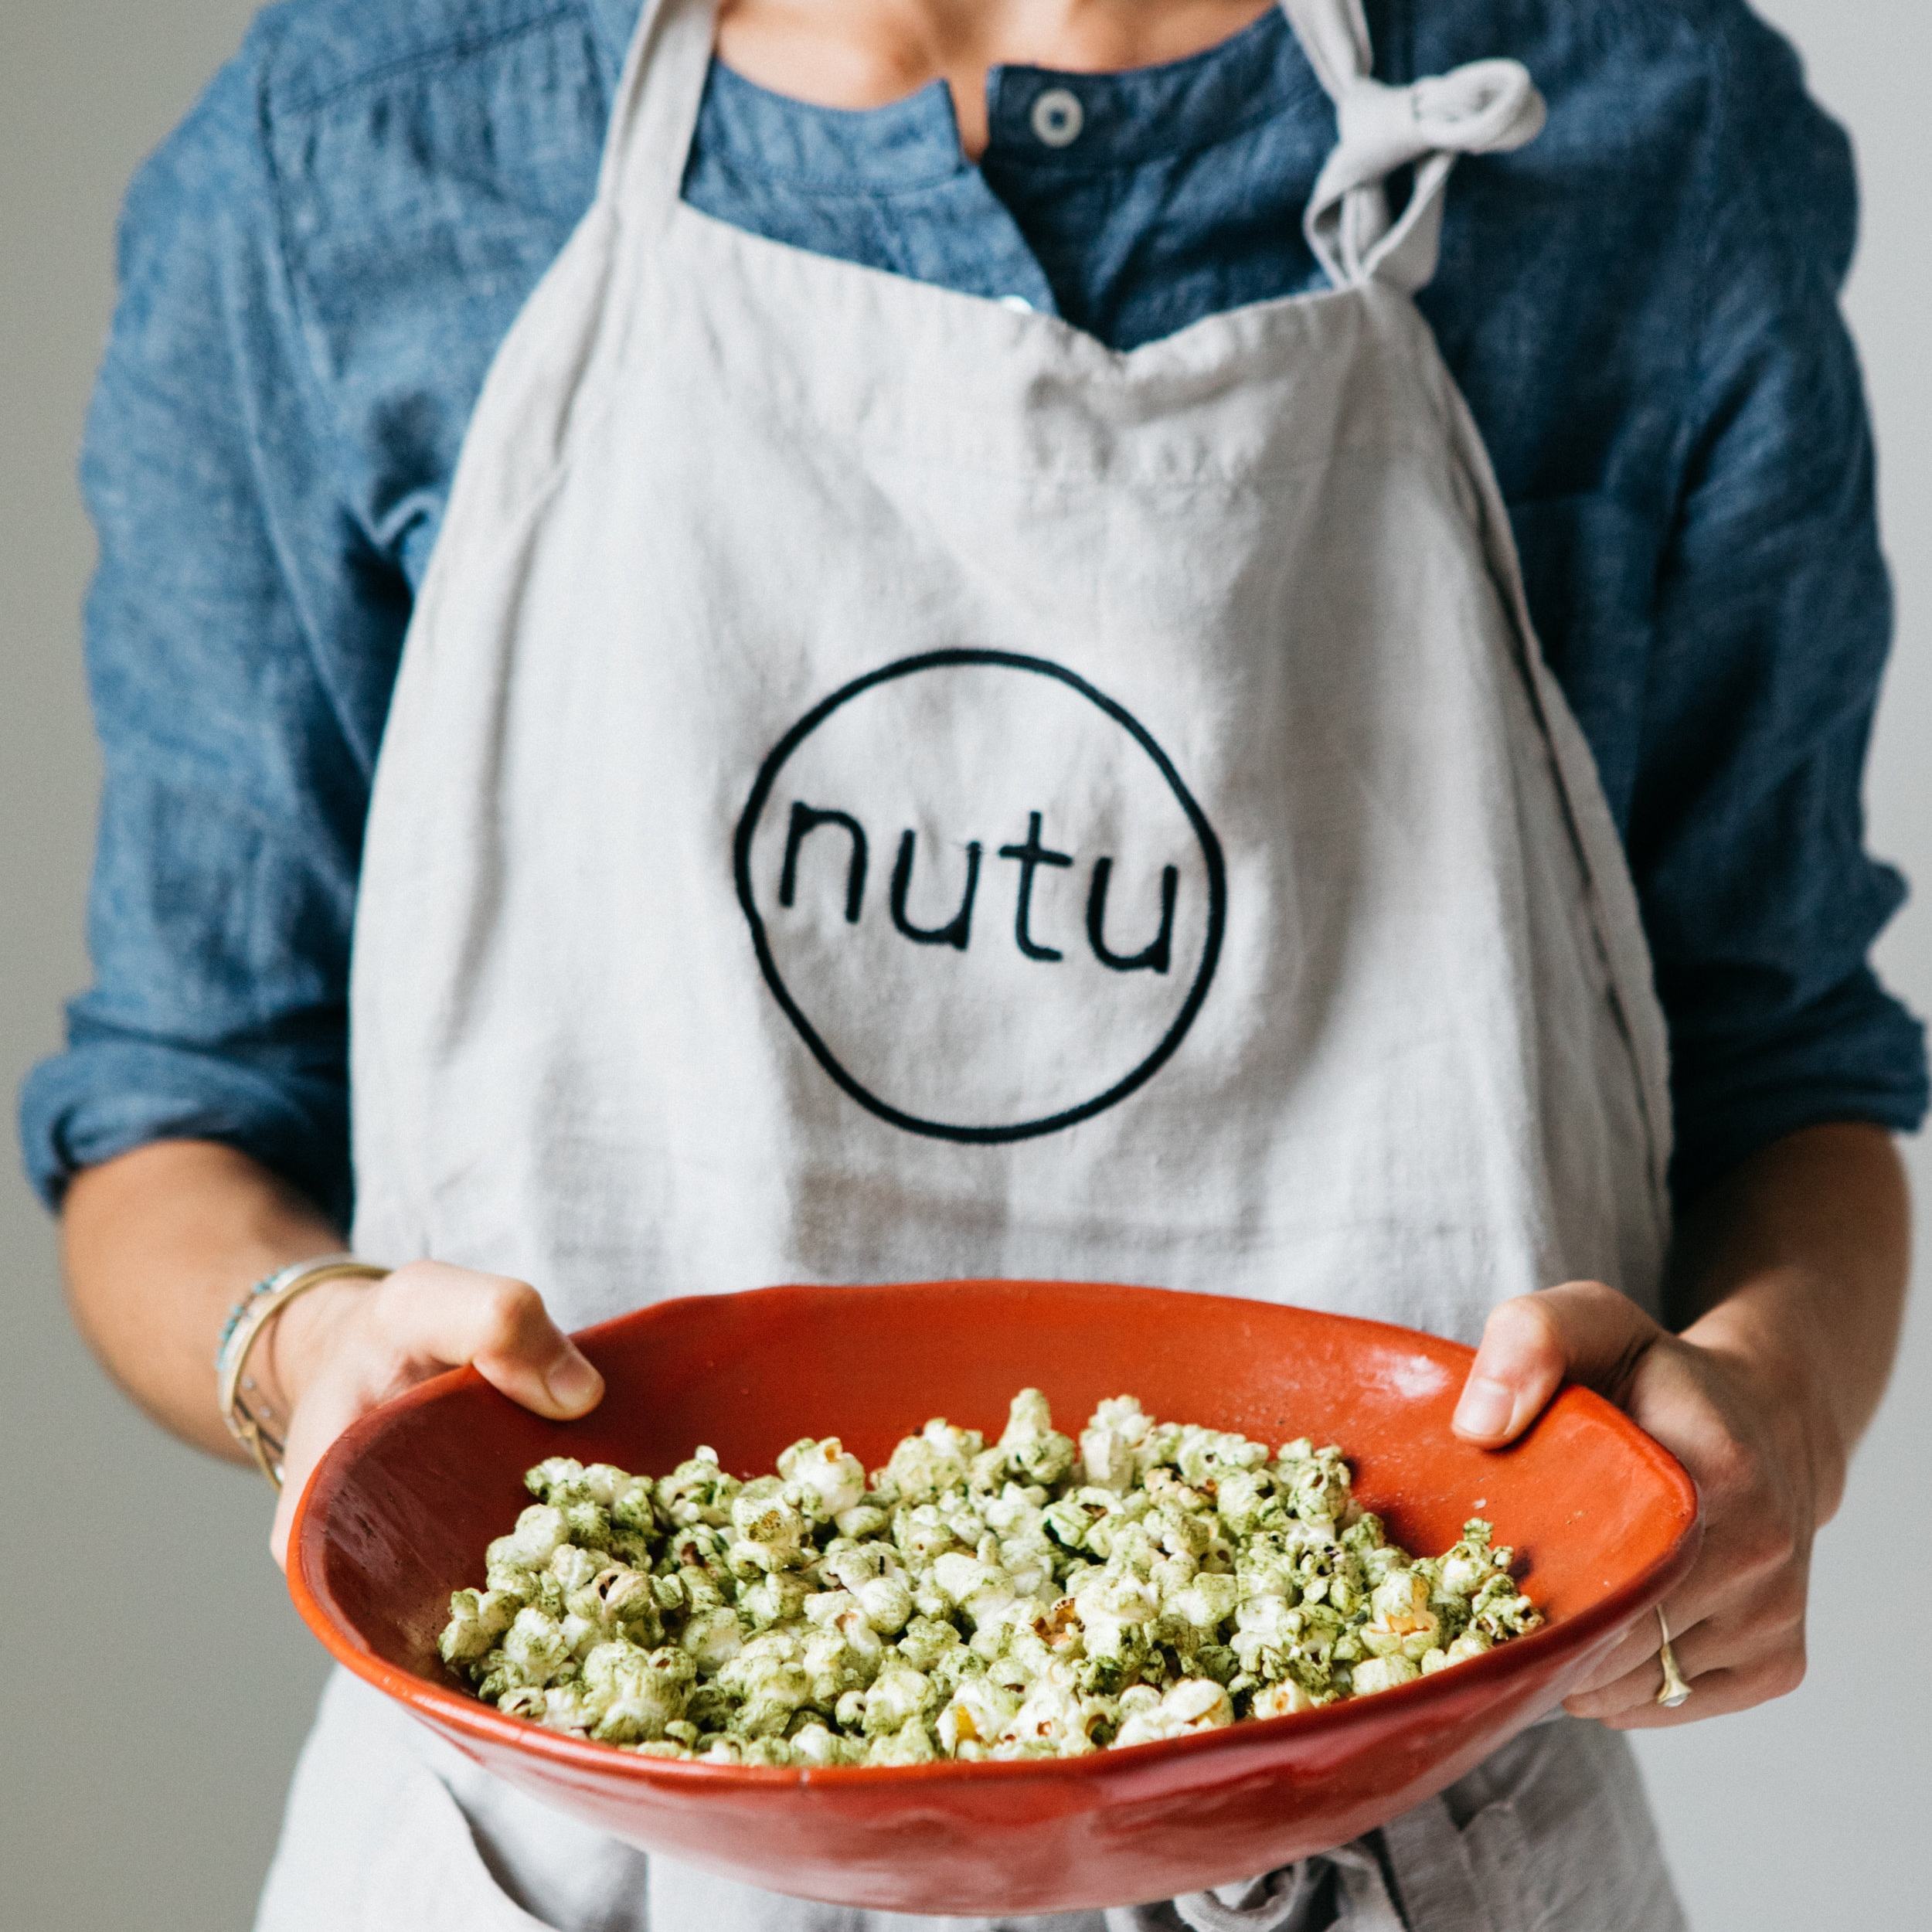 Nutu moringa has a subtle, nutty and earthy taste that lends itself to a wide range of culinary applications, including smoothies, juices, teas, lattes, baked goods, soups, dressings and much more—adding a powerful nutritional boost to our favorite everyday foods. - We're happy to share our delicious homemade plant-based recipes to help you incorporate this wondrous plant into your daily routine.